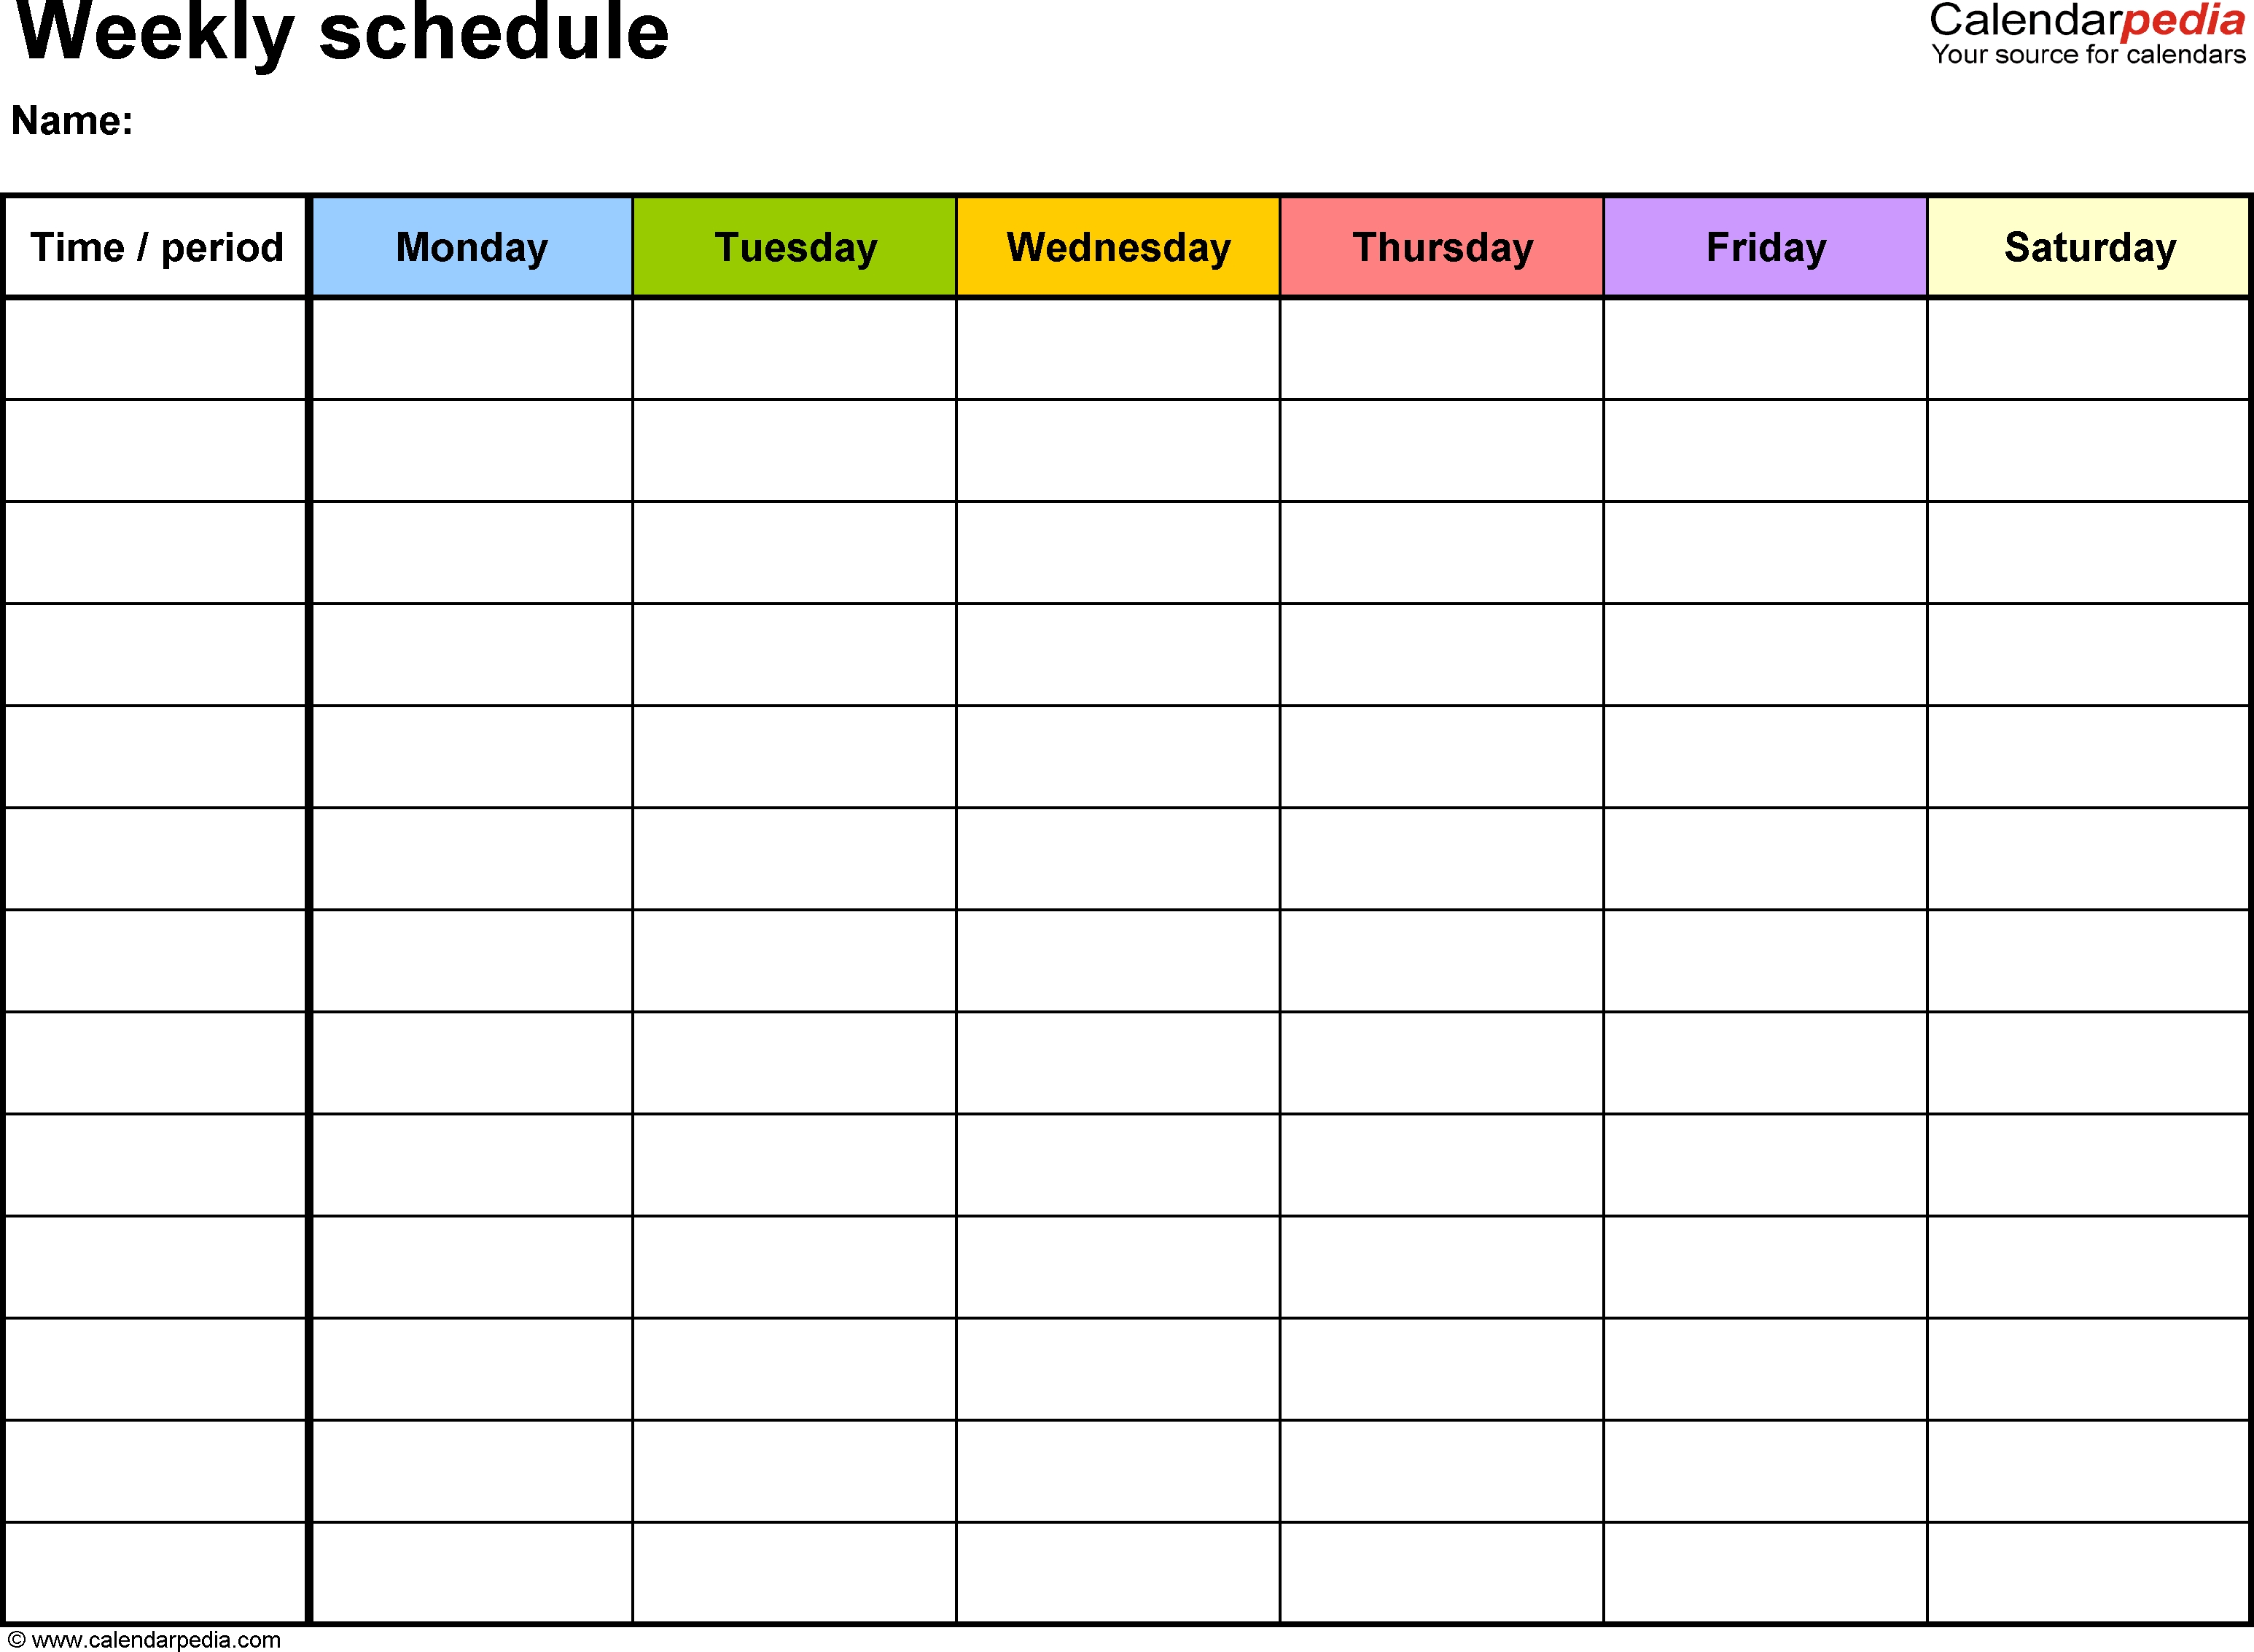 Free Weekly Schedule Templates For Word - 18 Templates-Monday To Friday Schedule Template